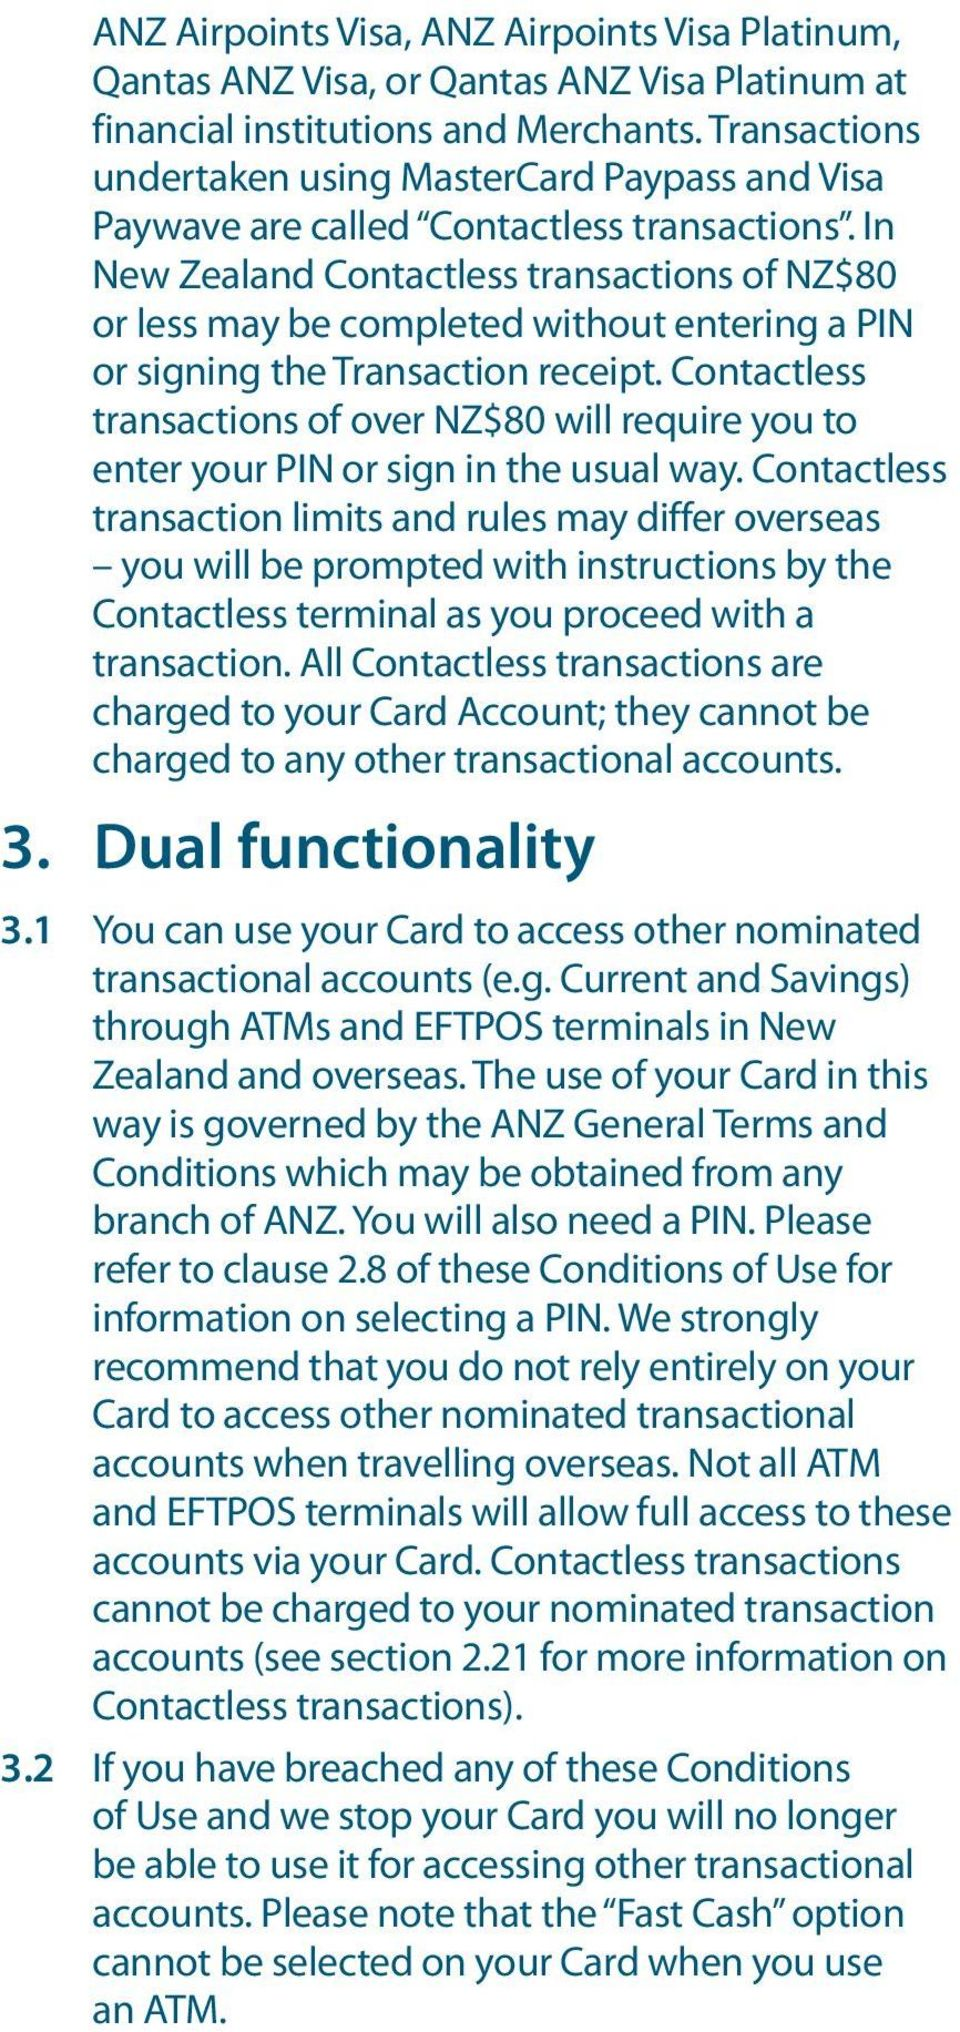 In New Zealand Contactless transactions of NZ$80 or less may be completed without entering a PIN or signing the Transaction receipt.